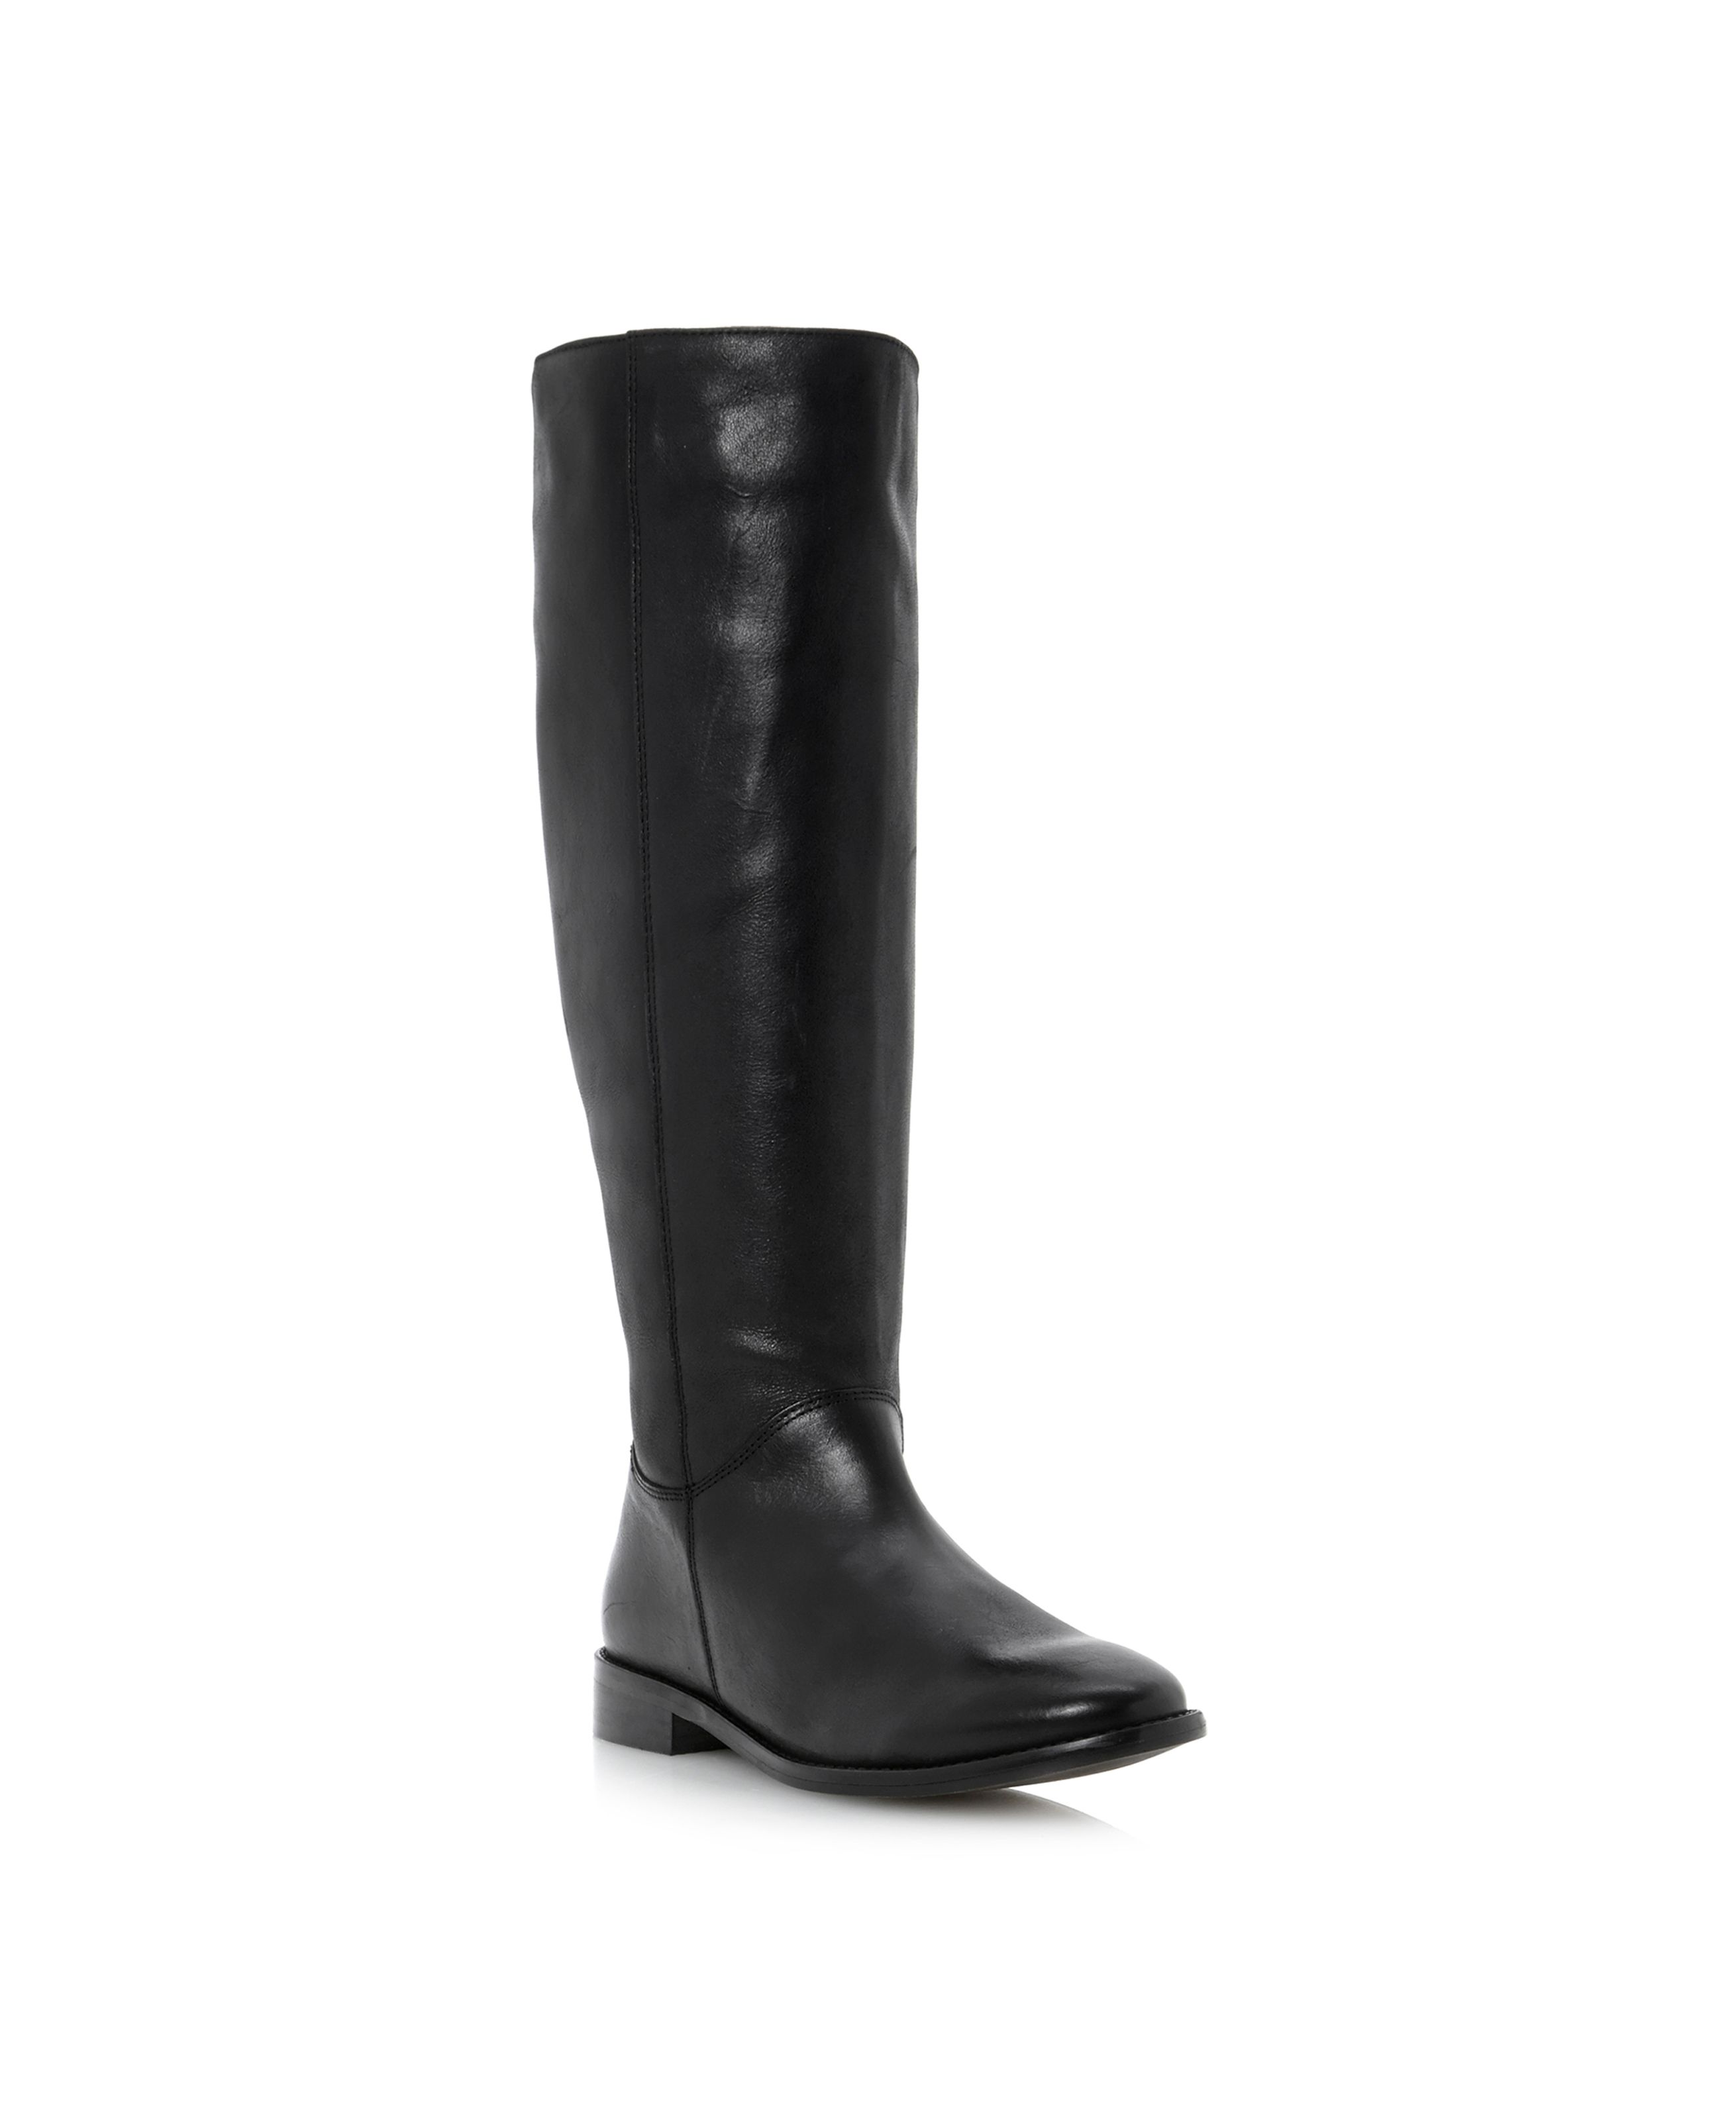 Tatler-clean riding boots